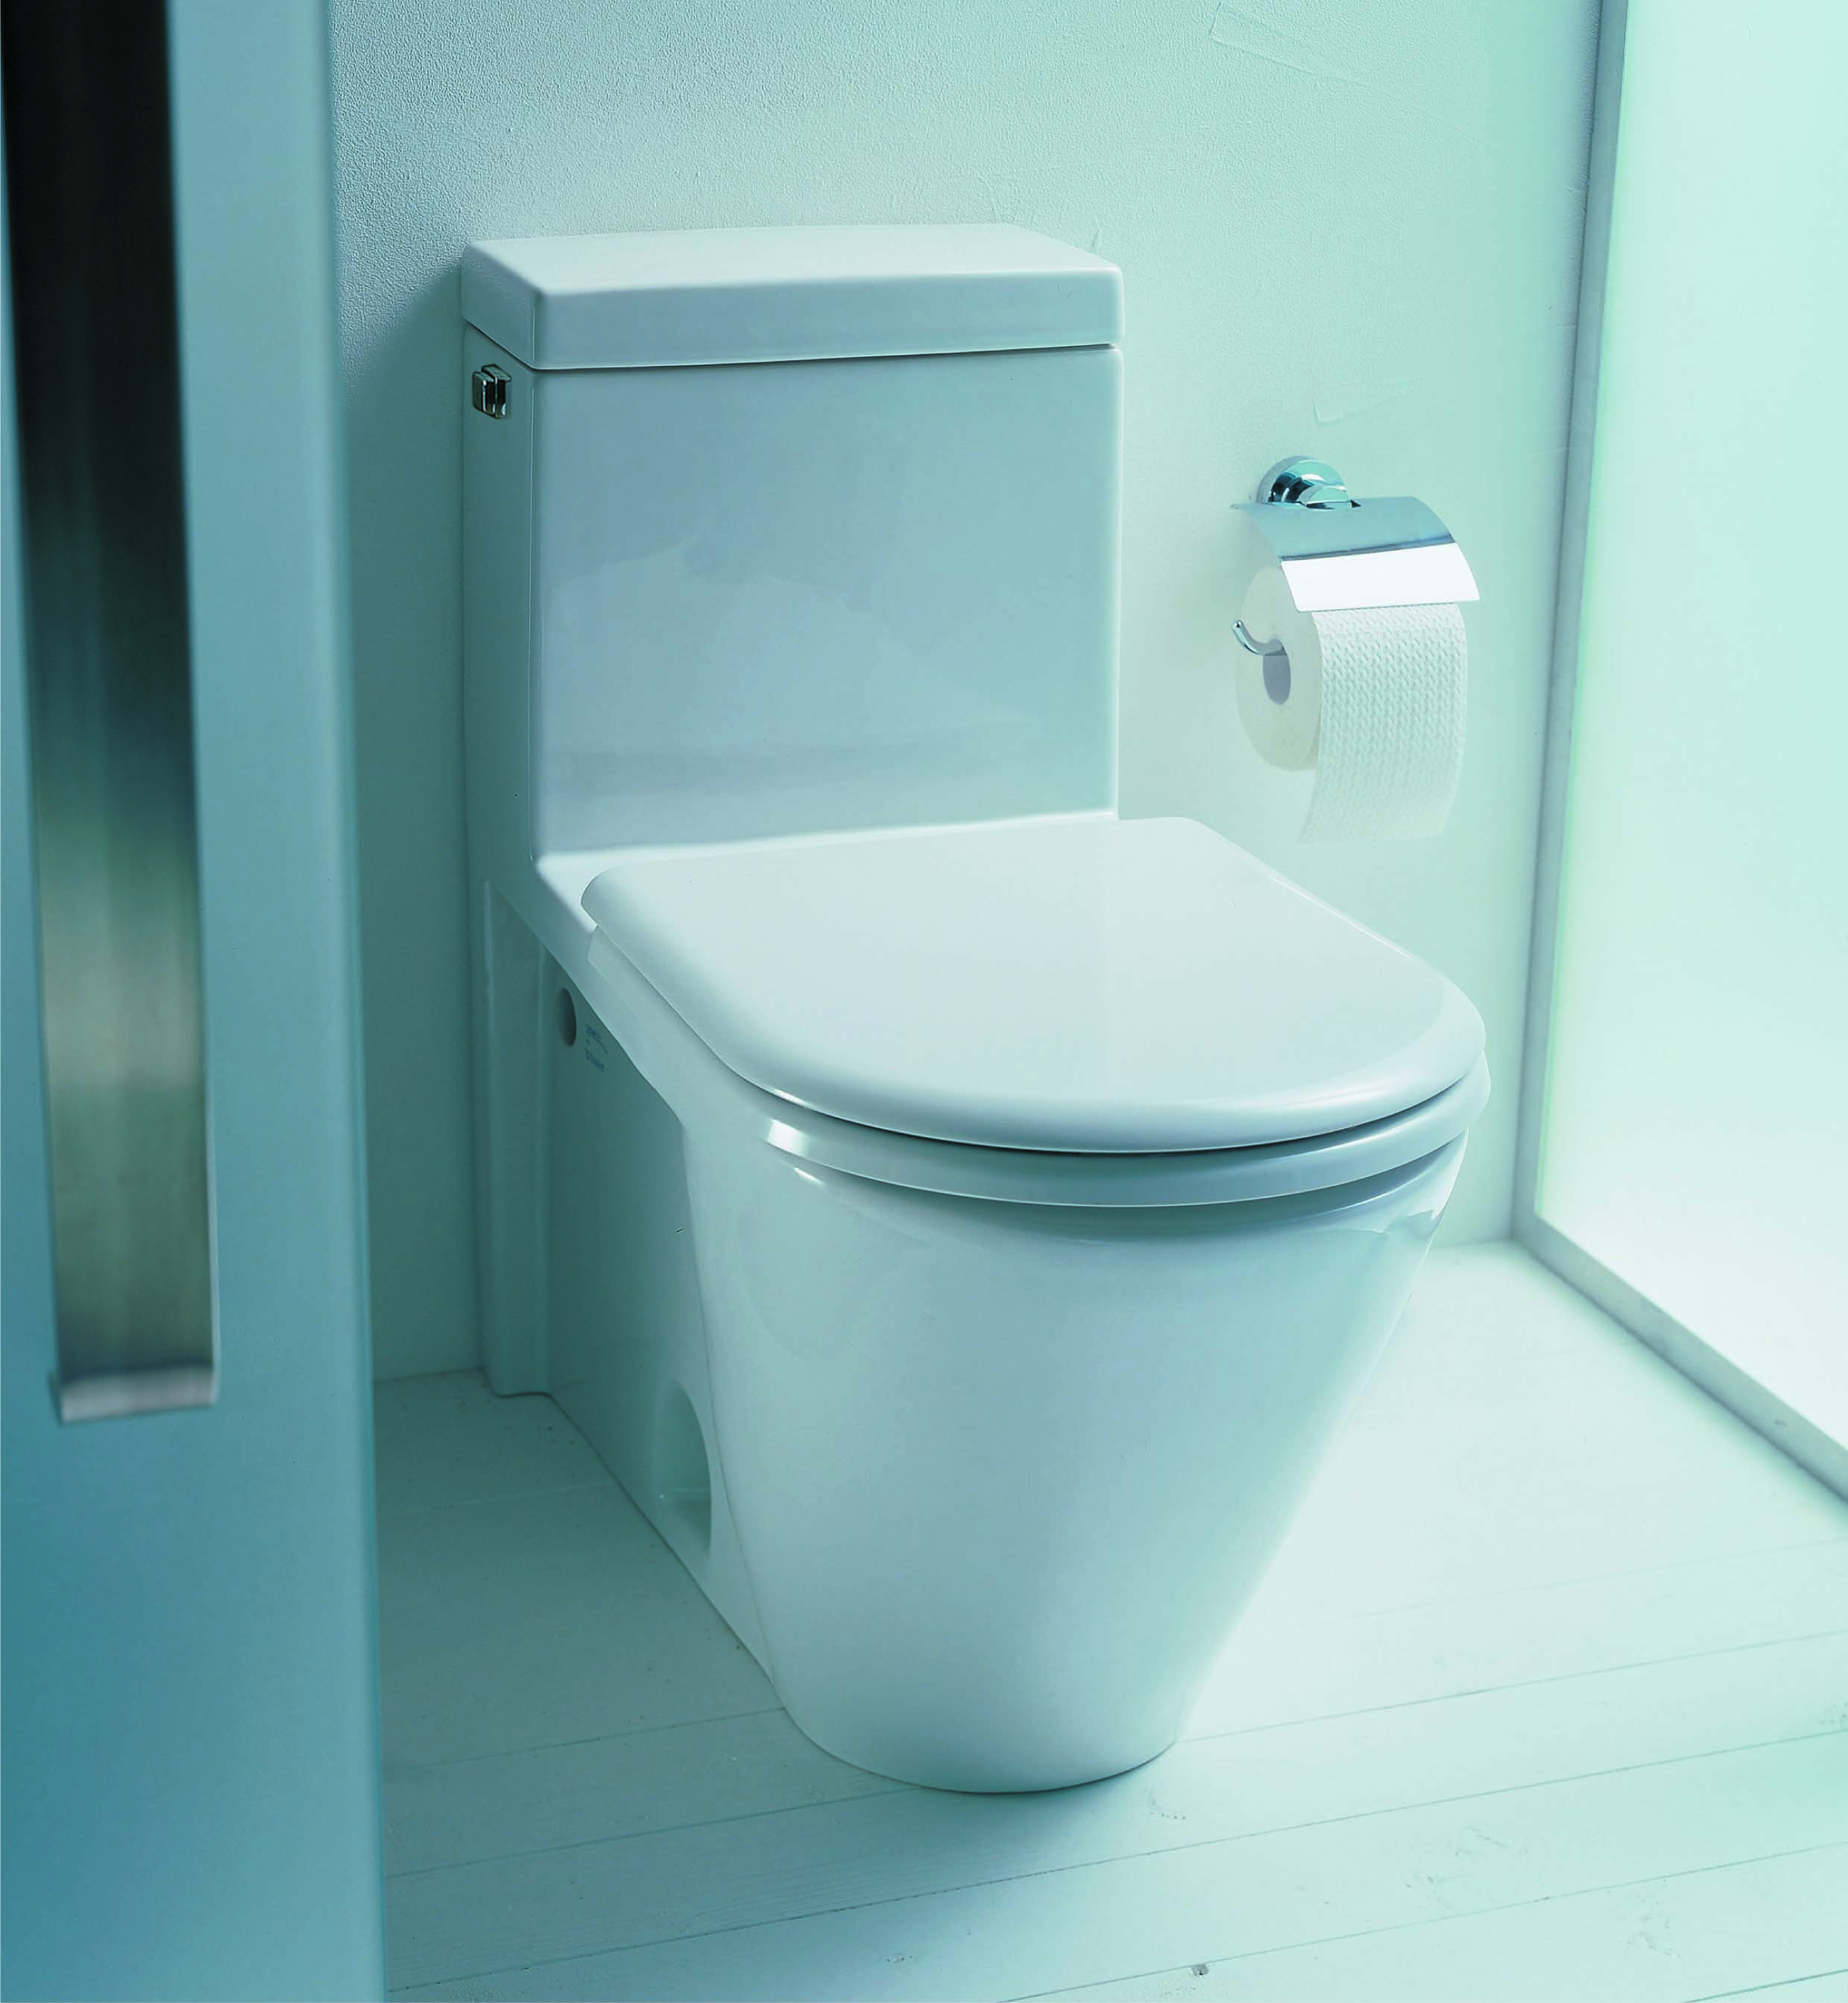 US Toilets #016301 One-piece toilet, on Designer Pages